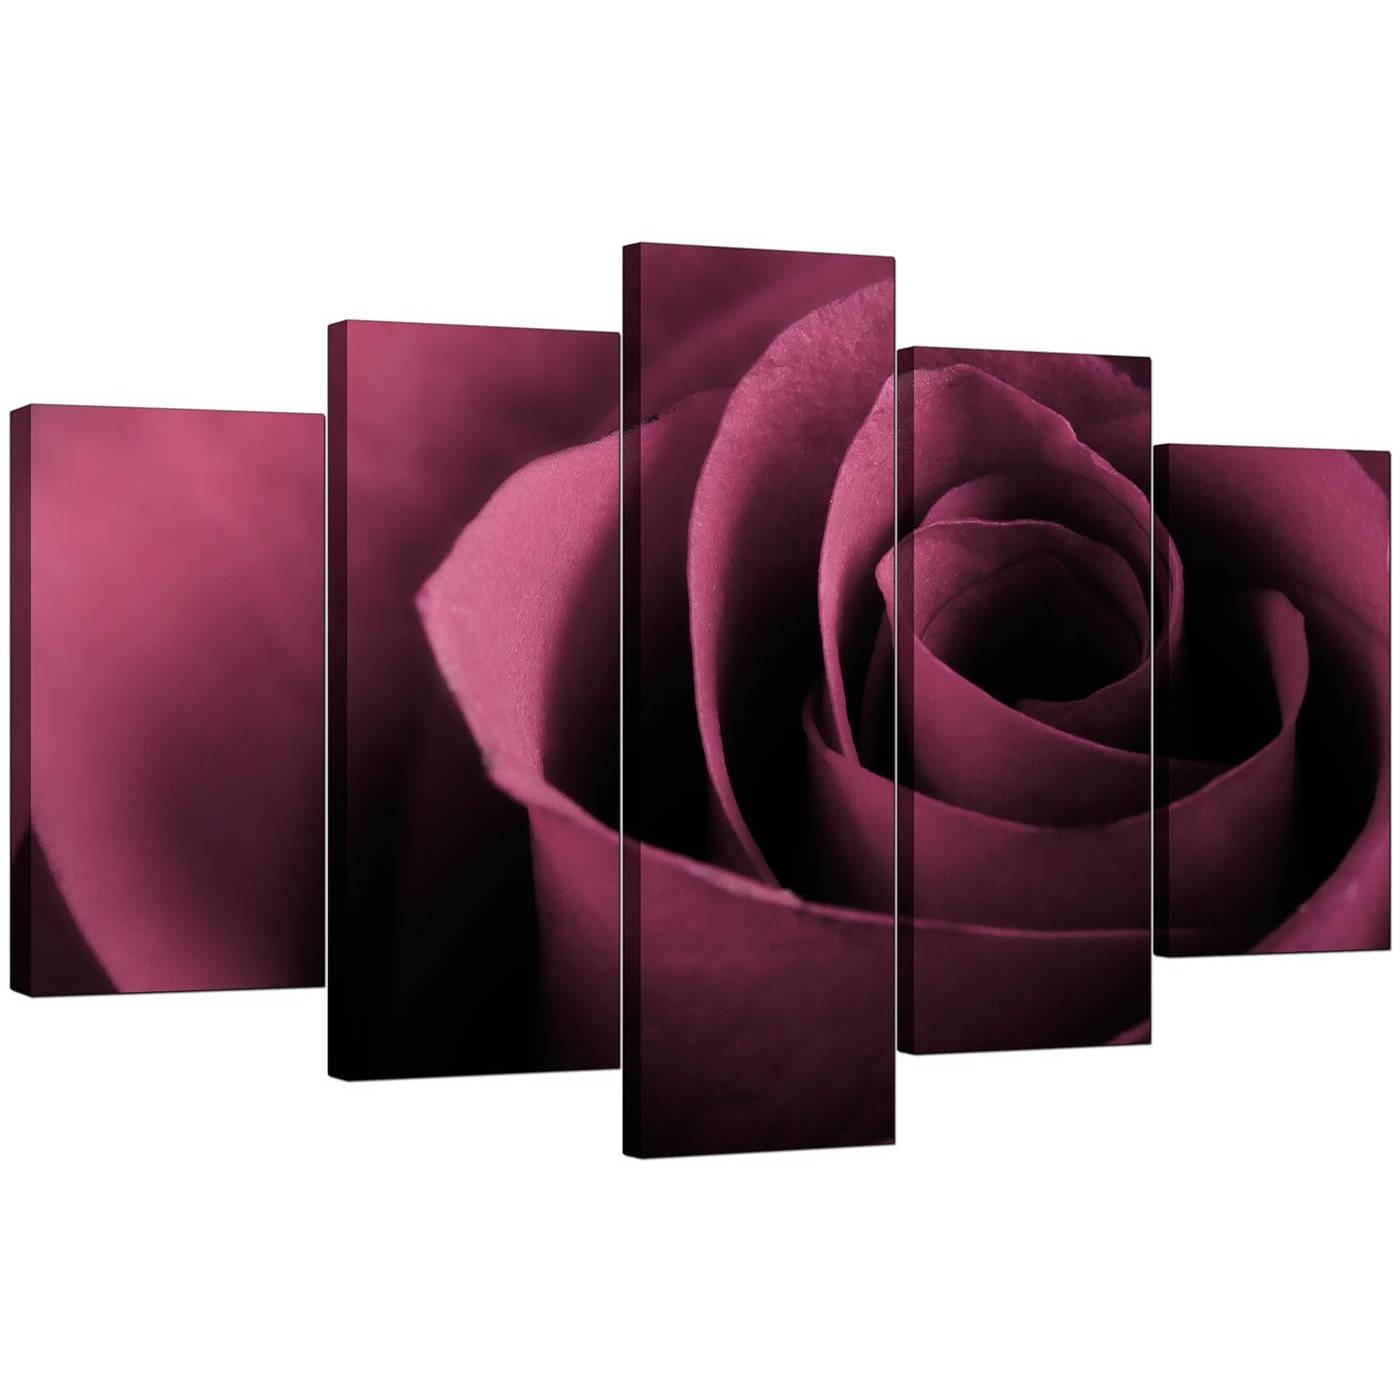 Extra Large Rose Canvas Wall Art Five Piece In Plum With Regard To Latest Rose Canvas Wall Art (View 13 of 20)